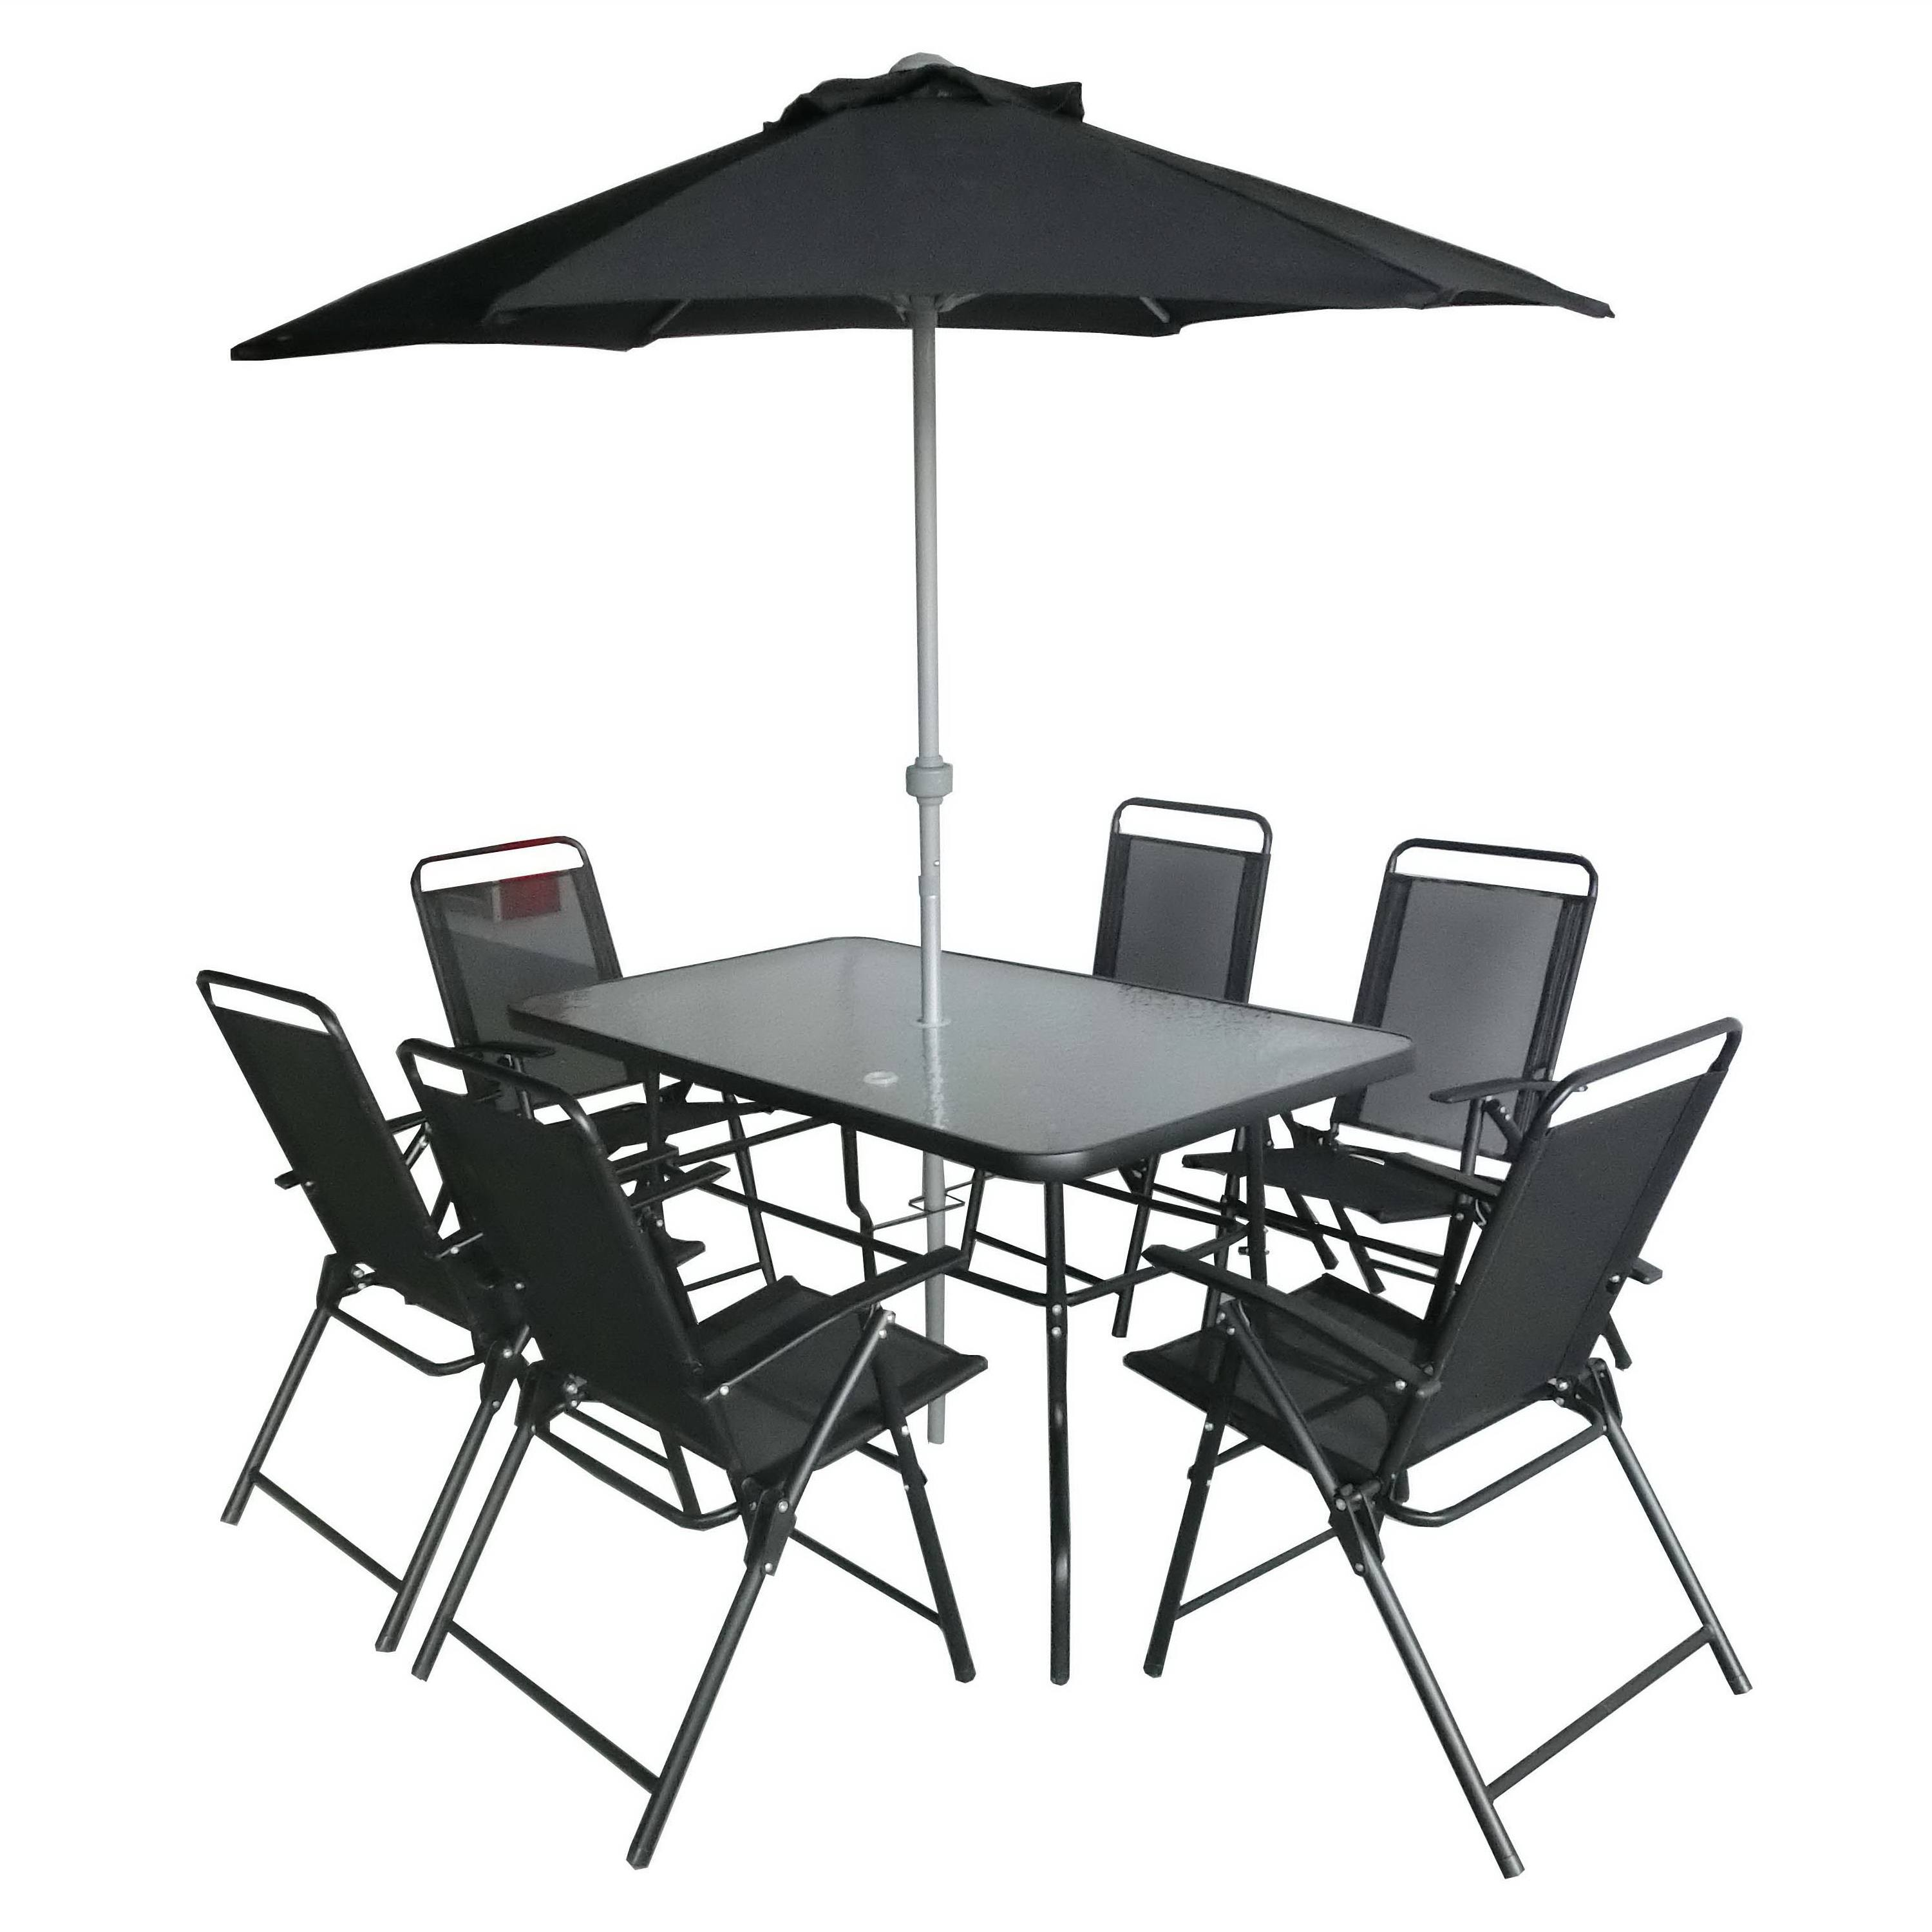 6 seats folding steel outdoor garden furniture patio dining table and chair set with umbrella